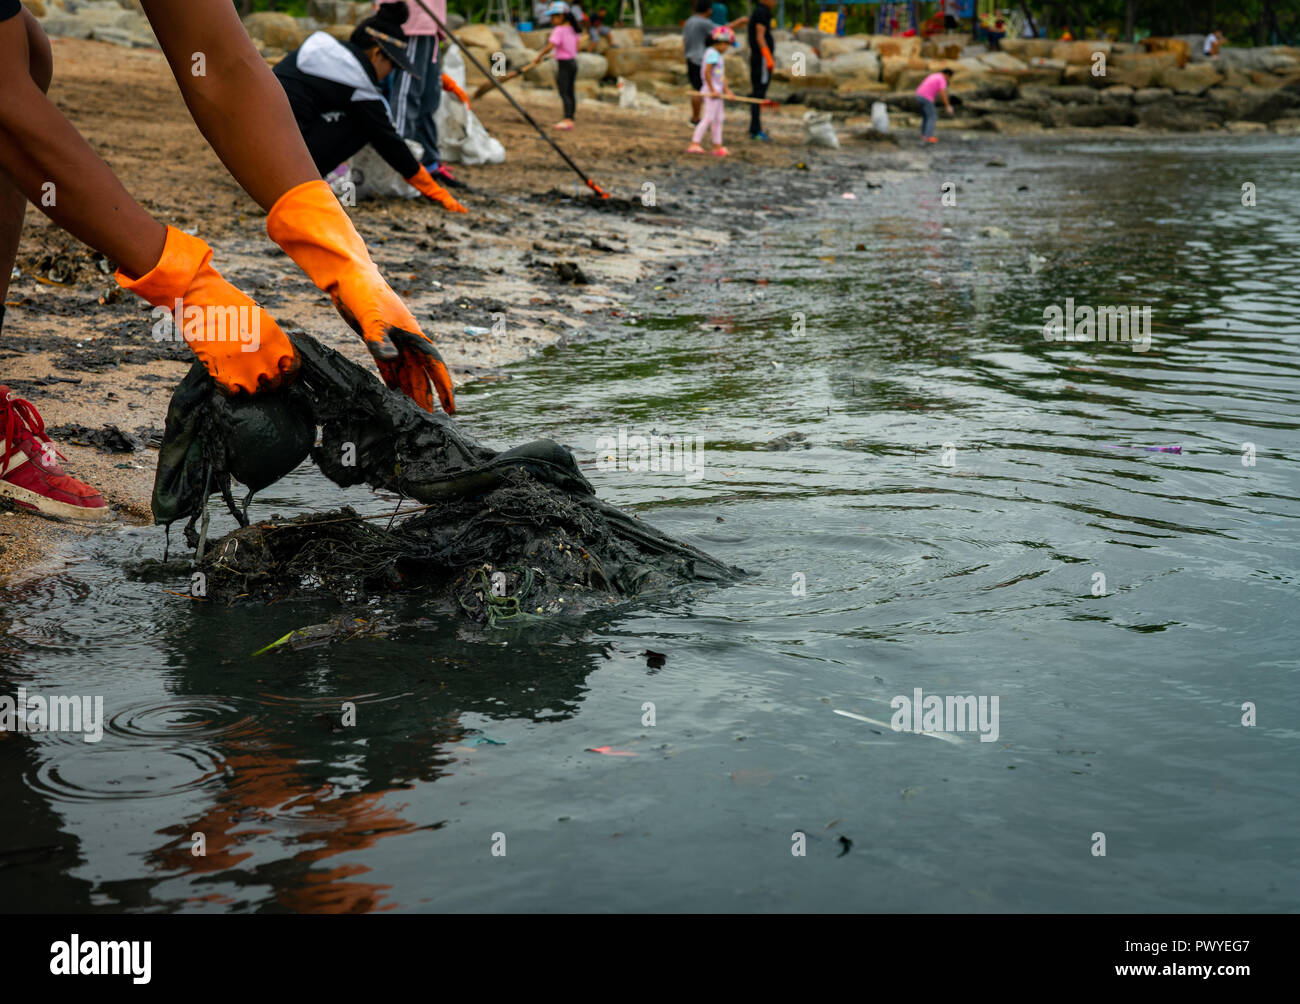 Volunteers wear orange rubber gloves to collect garbage on the beach. Beach environment pollution. Volunteers cleaning the sand. Tidying up rubbish on - Stock Image